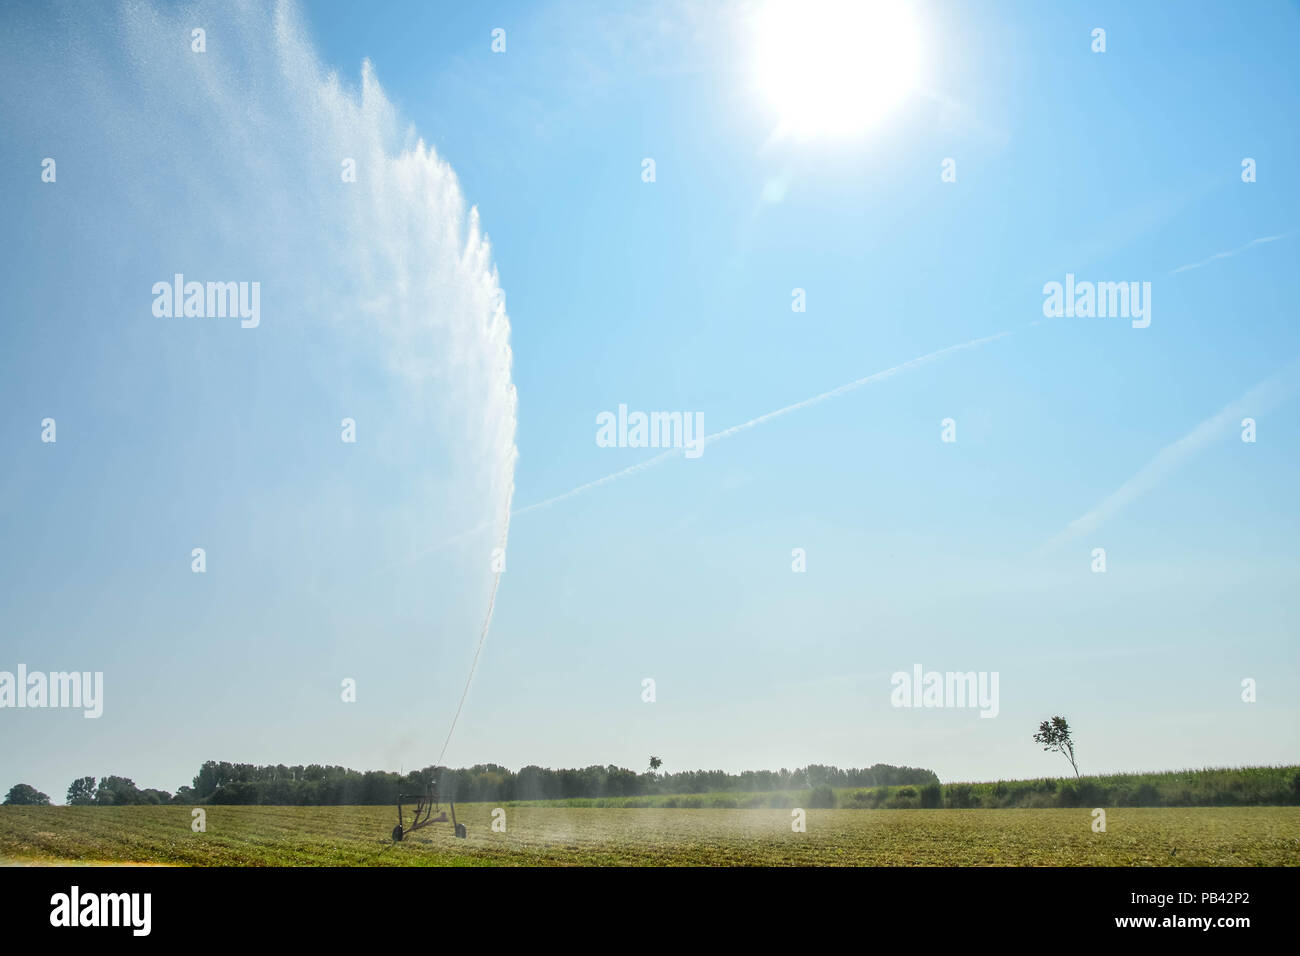 heat wave over europe. Record temperatures and harvest loss. - Stock Image